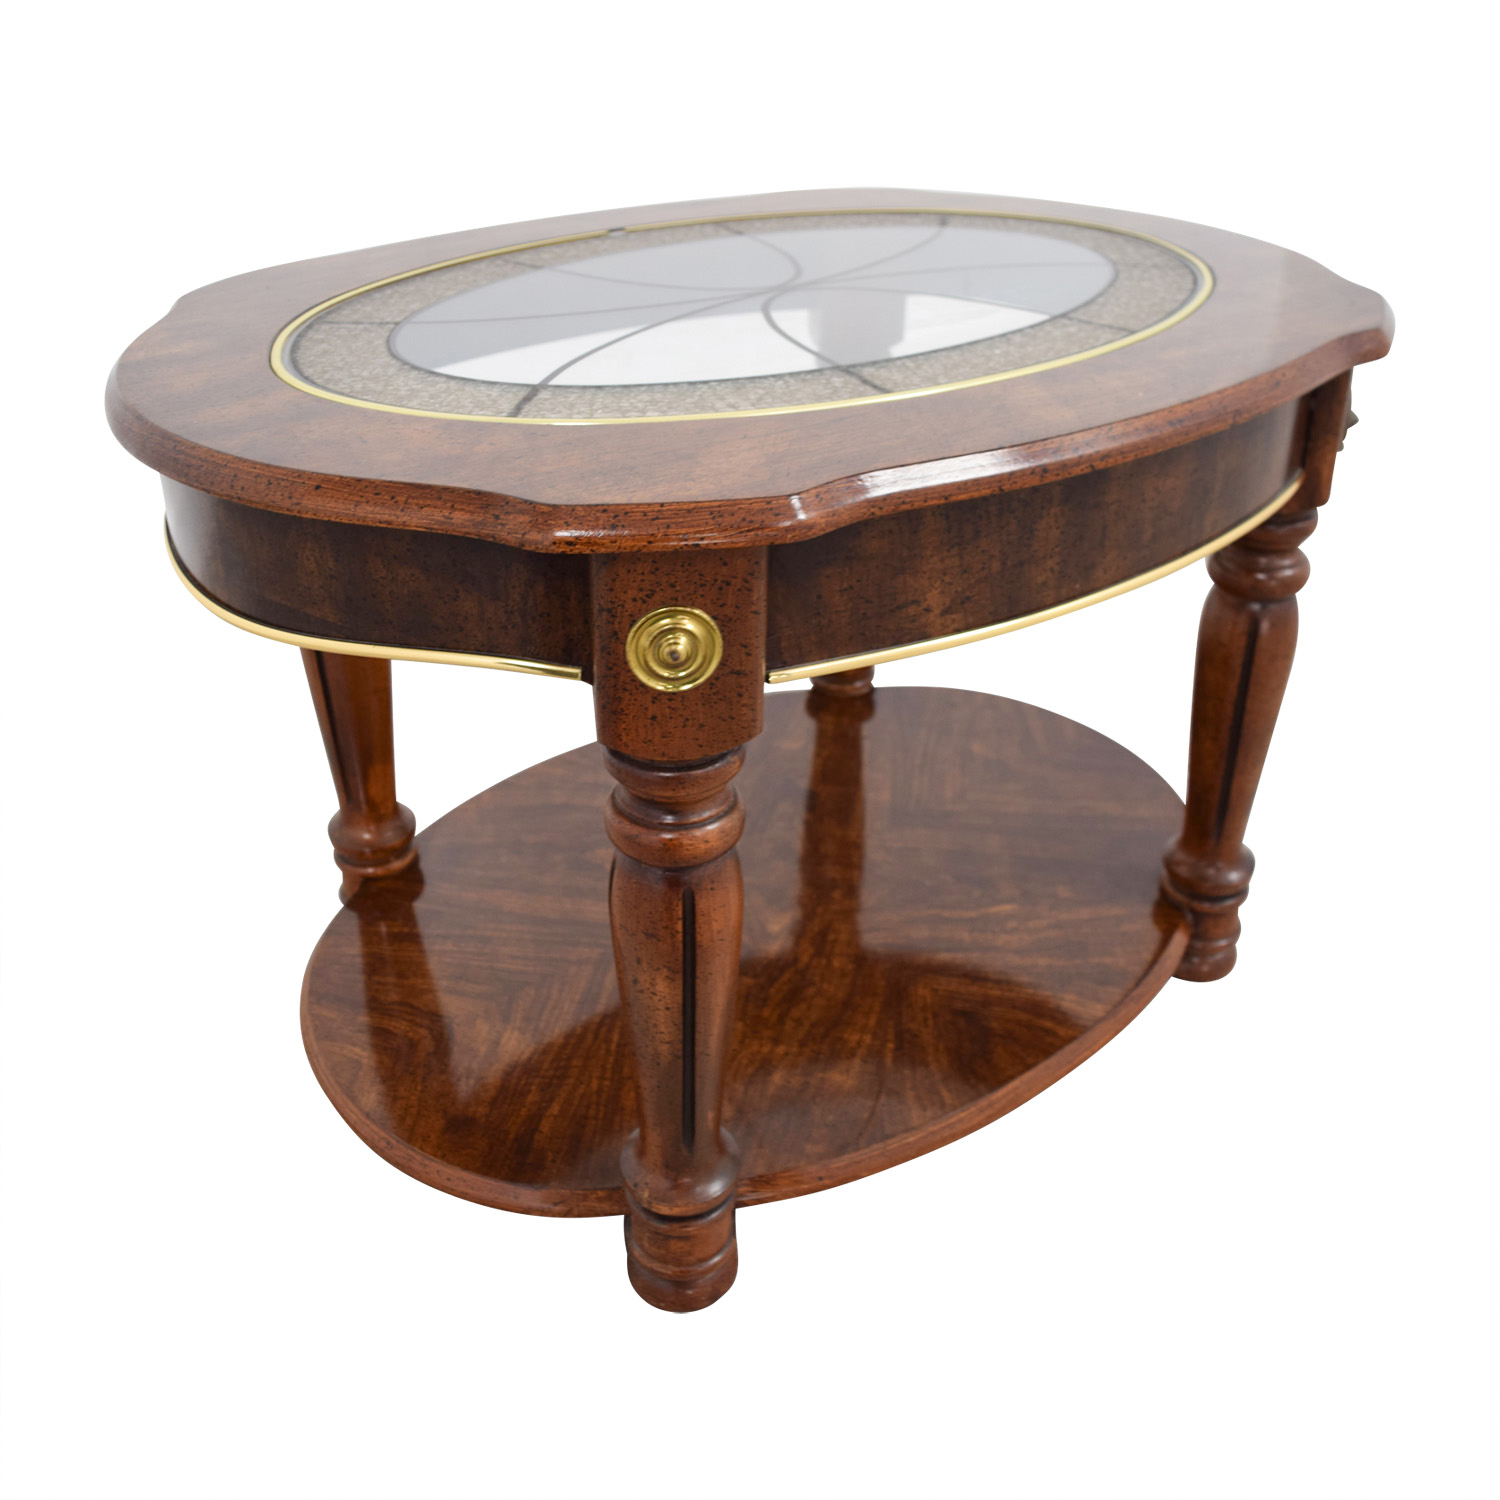 Vintage Small Round Coffee Table / Tables